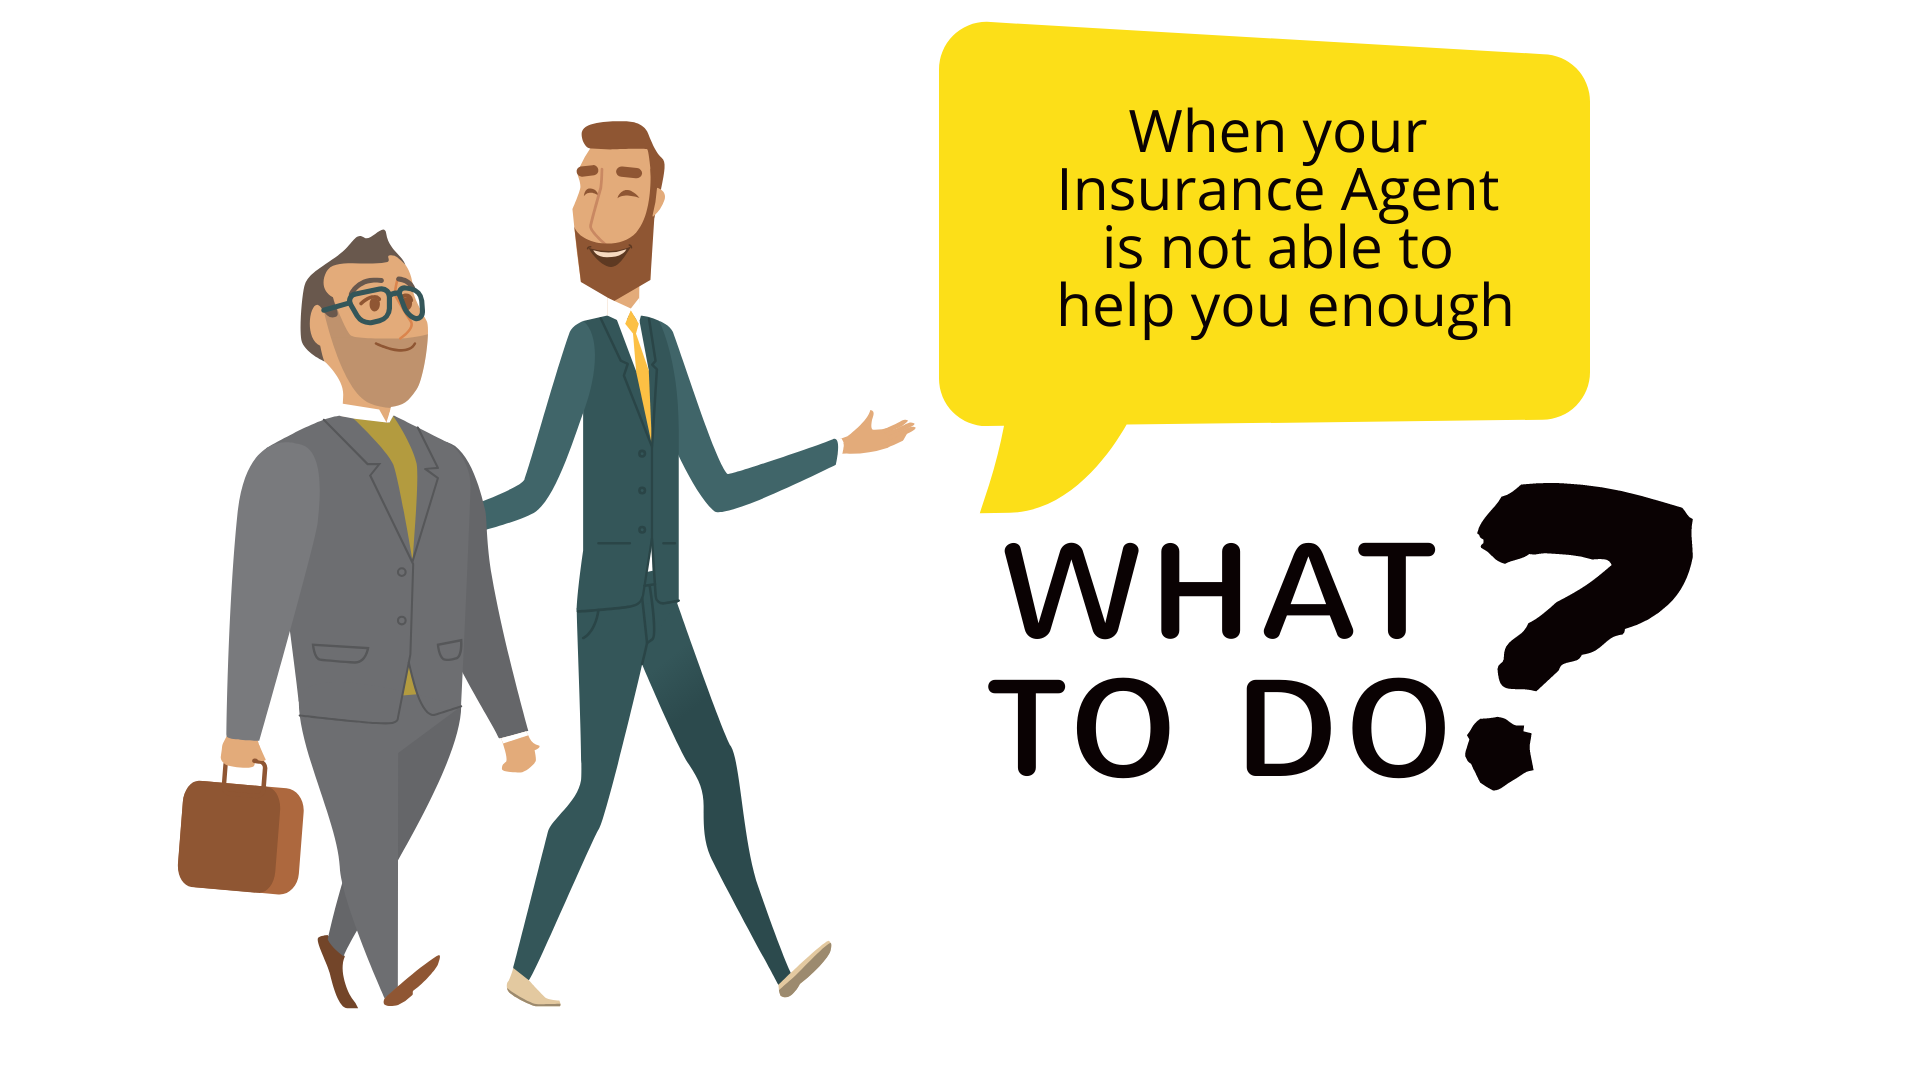 5 things to know when your Insurance Agent is unable to help you enough